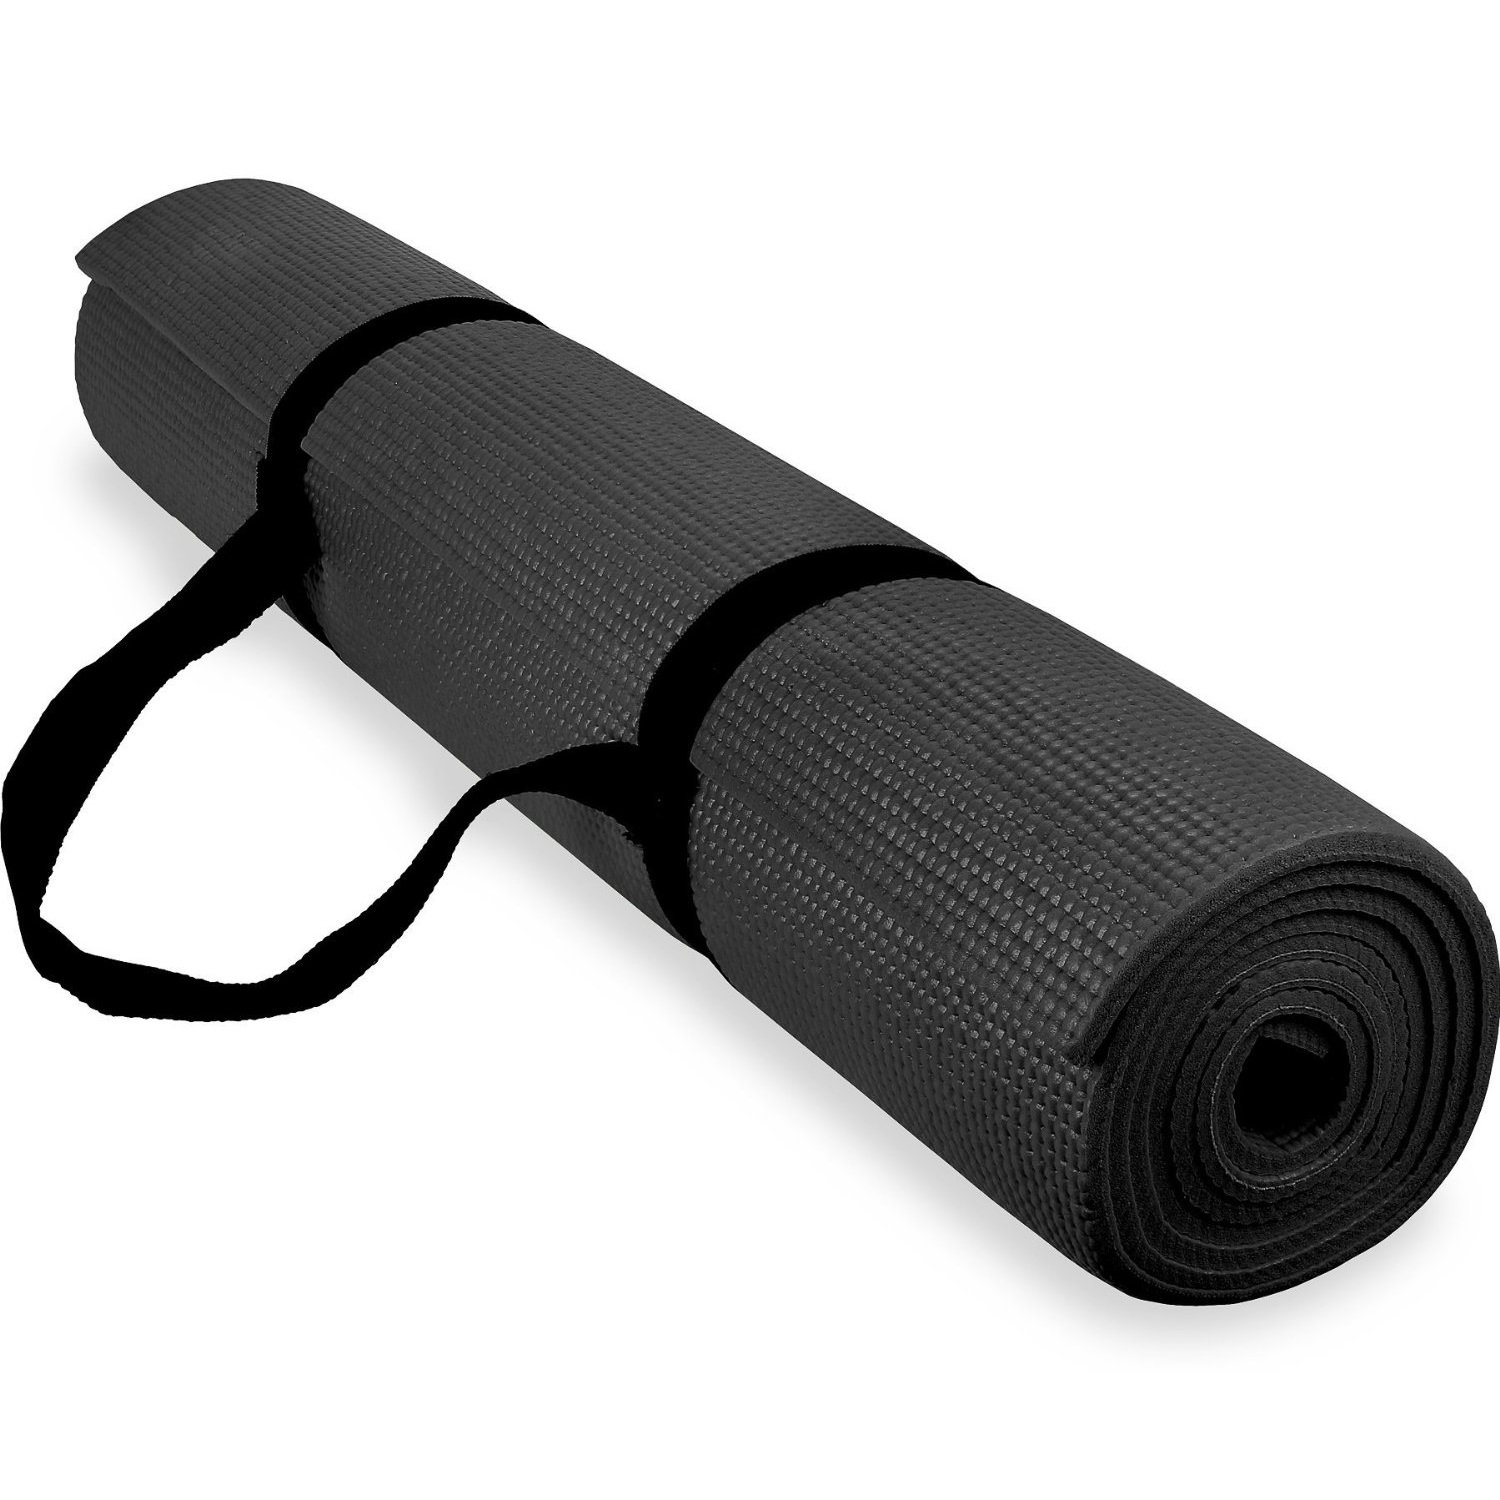 spoga anti-slip exercise yoga mat with carrying strap black